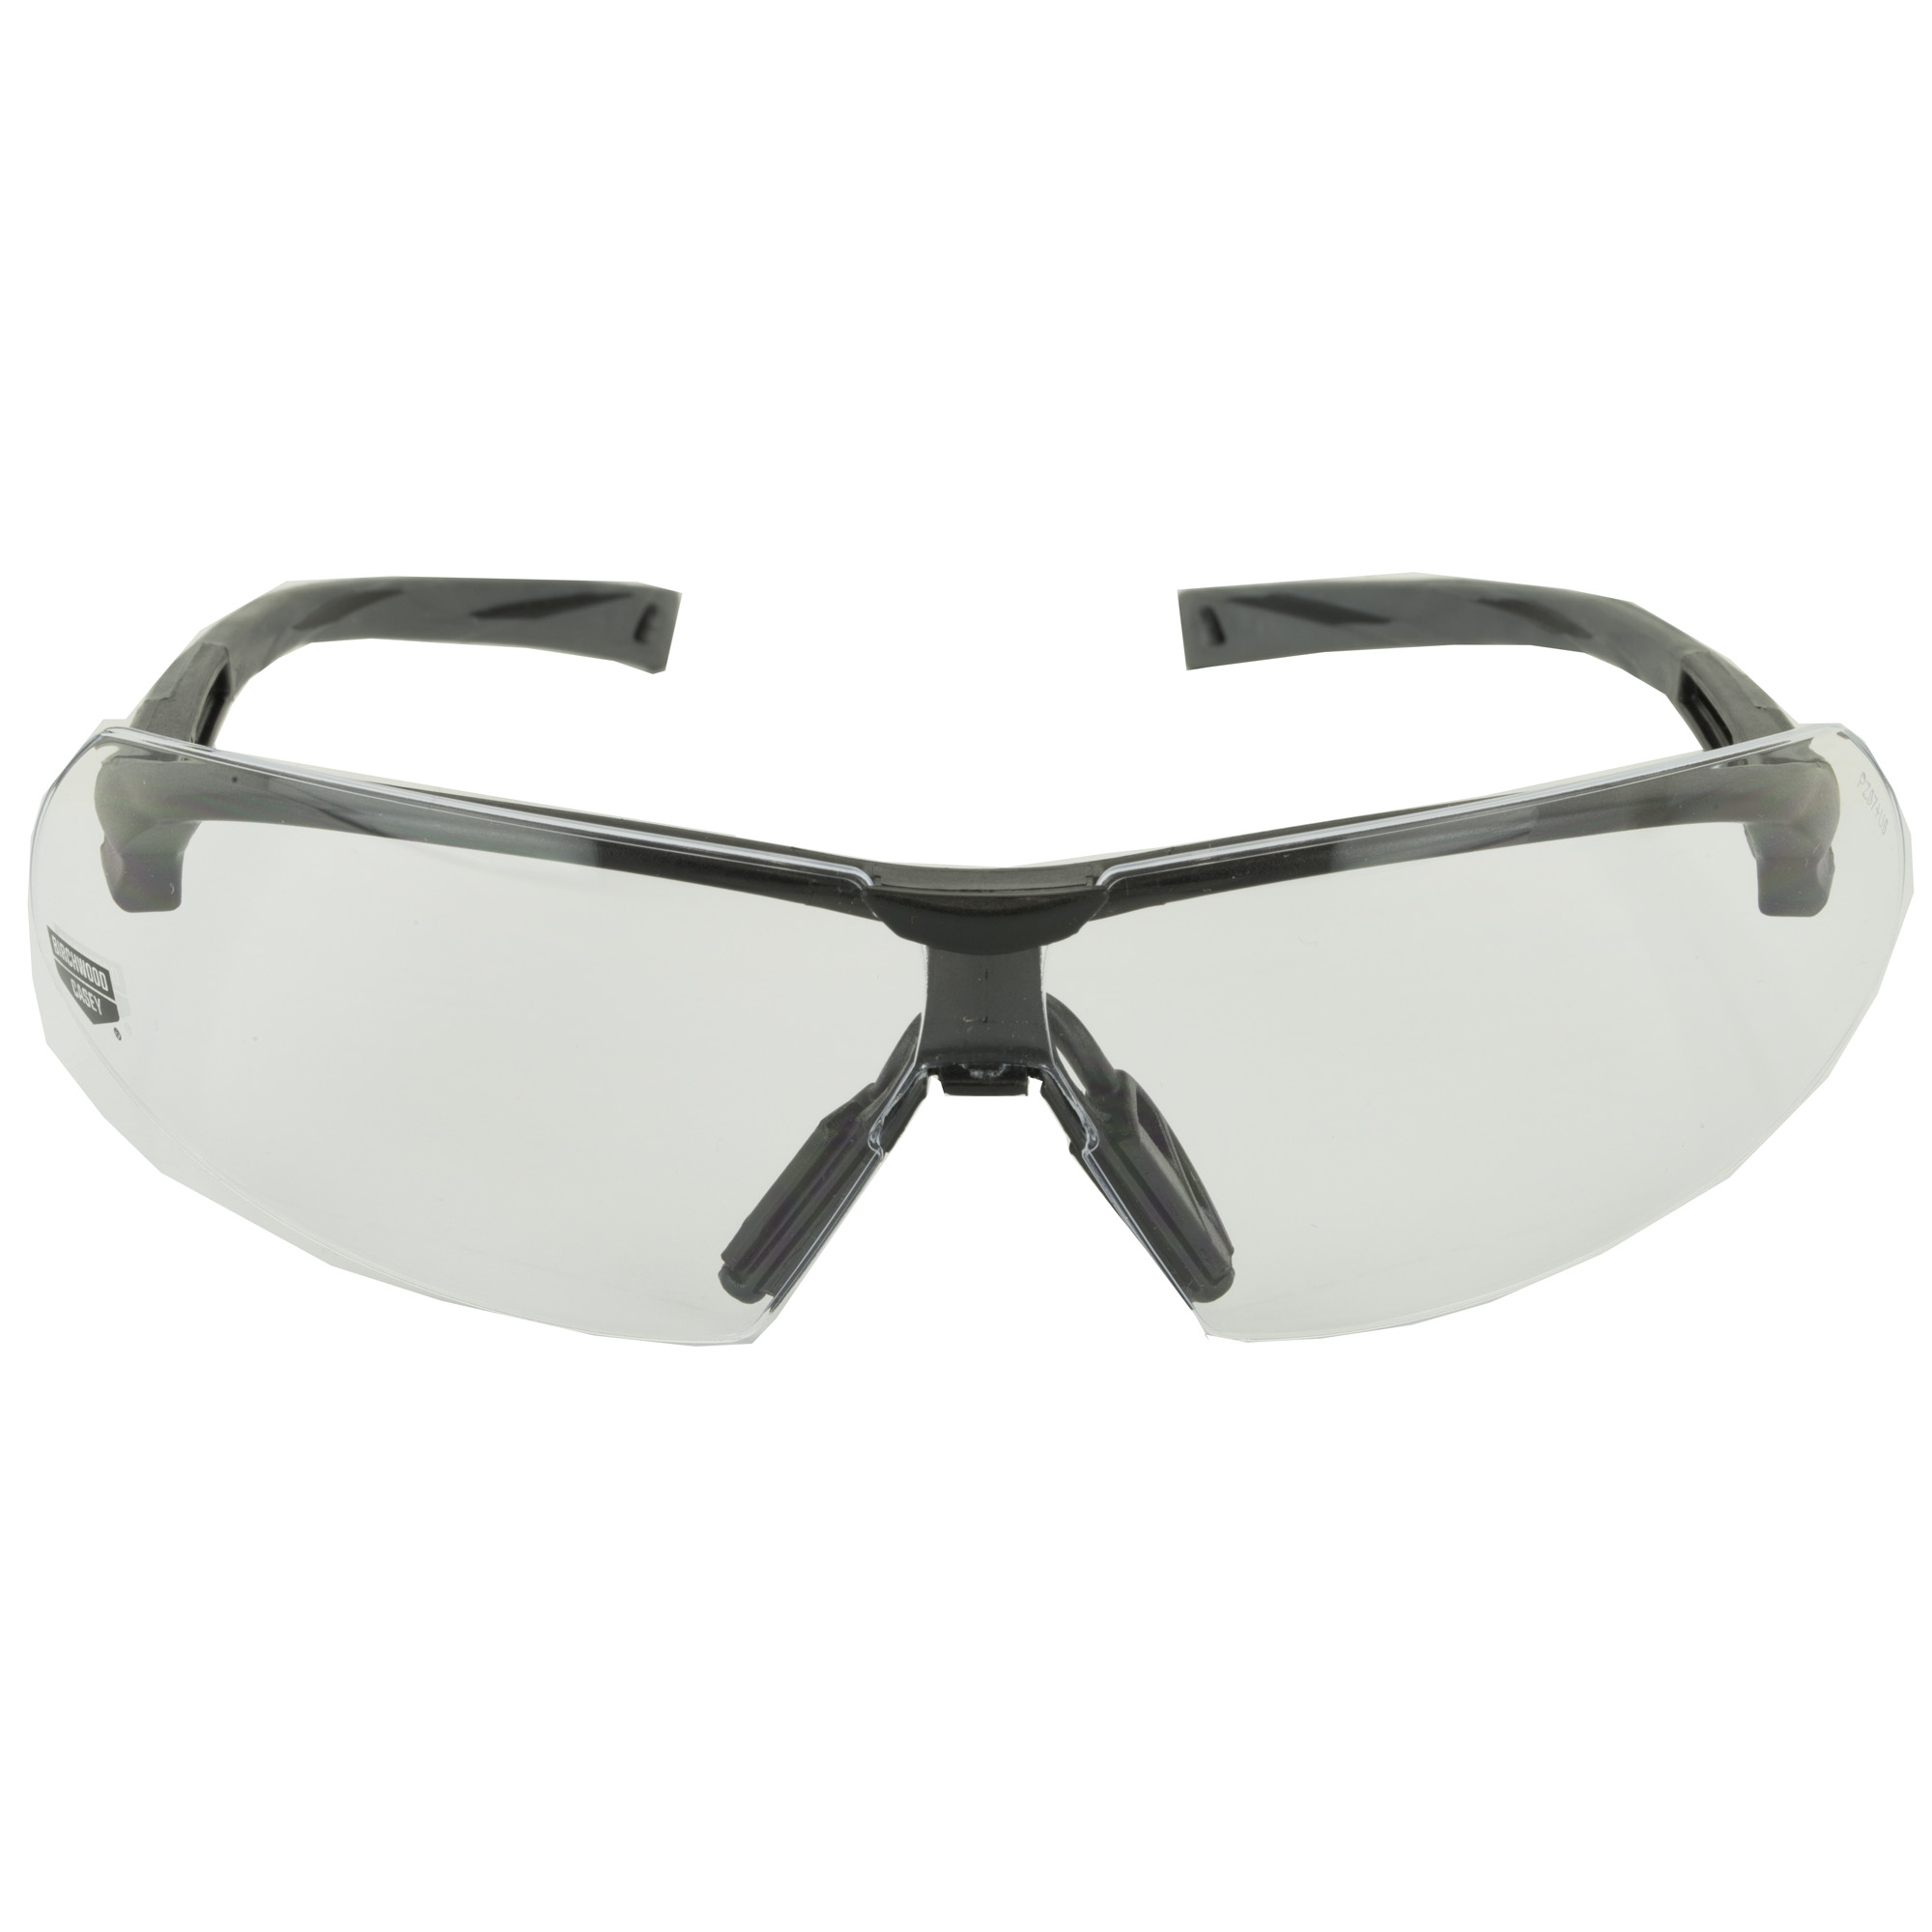 The SKYTE Clear Lens Eye Protection exceed high velocity impact standards and feature a free floating lens design. These shooting glasses offer high-end performance at a price all shooters can afford. The clear lens is a great choice for all around shooting applications.